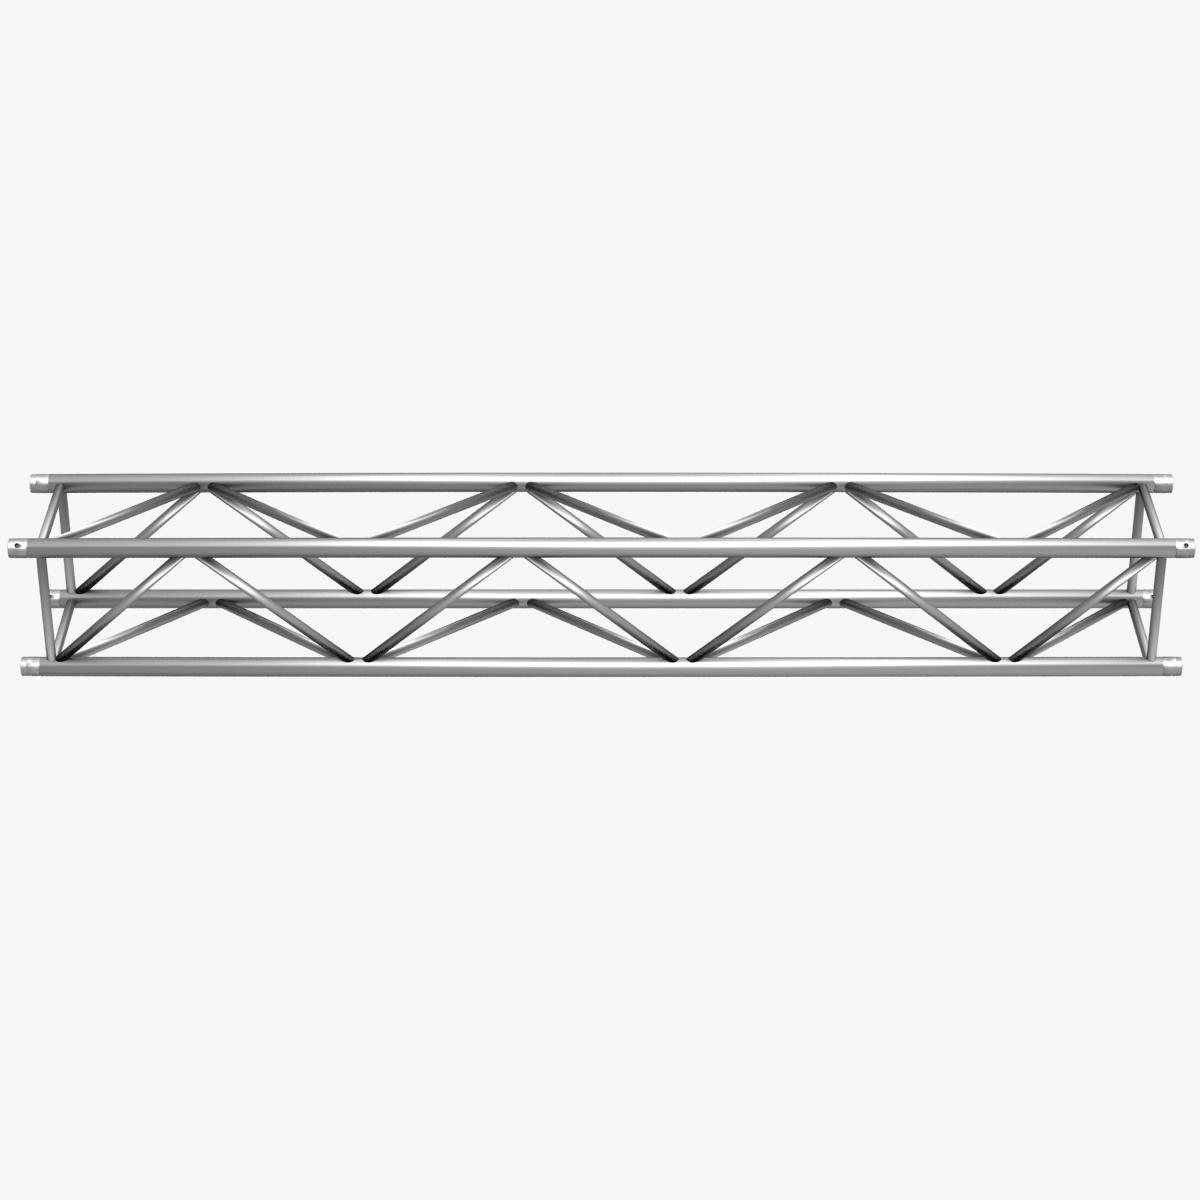 big square truss (collection 10 modular pieces) 3d model 3ds dxf fbx c4d dae  268553